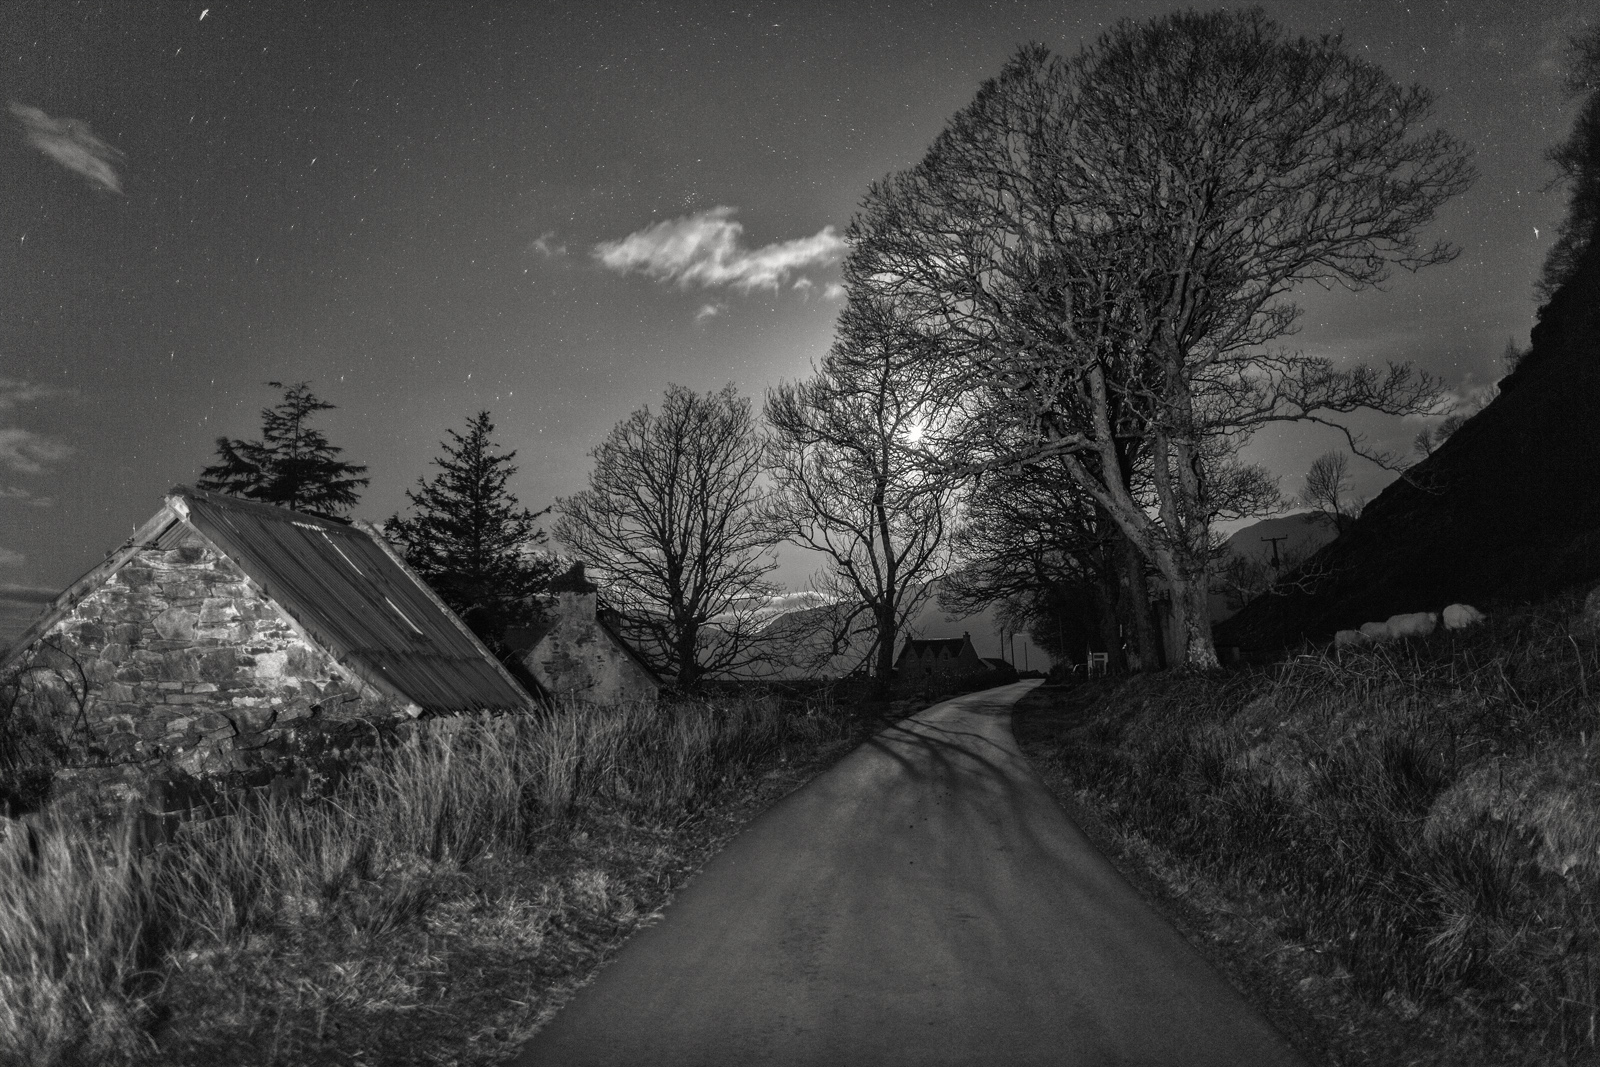 Moonlit road through the hills